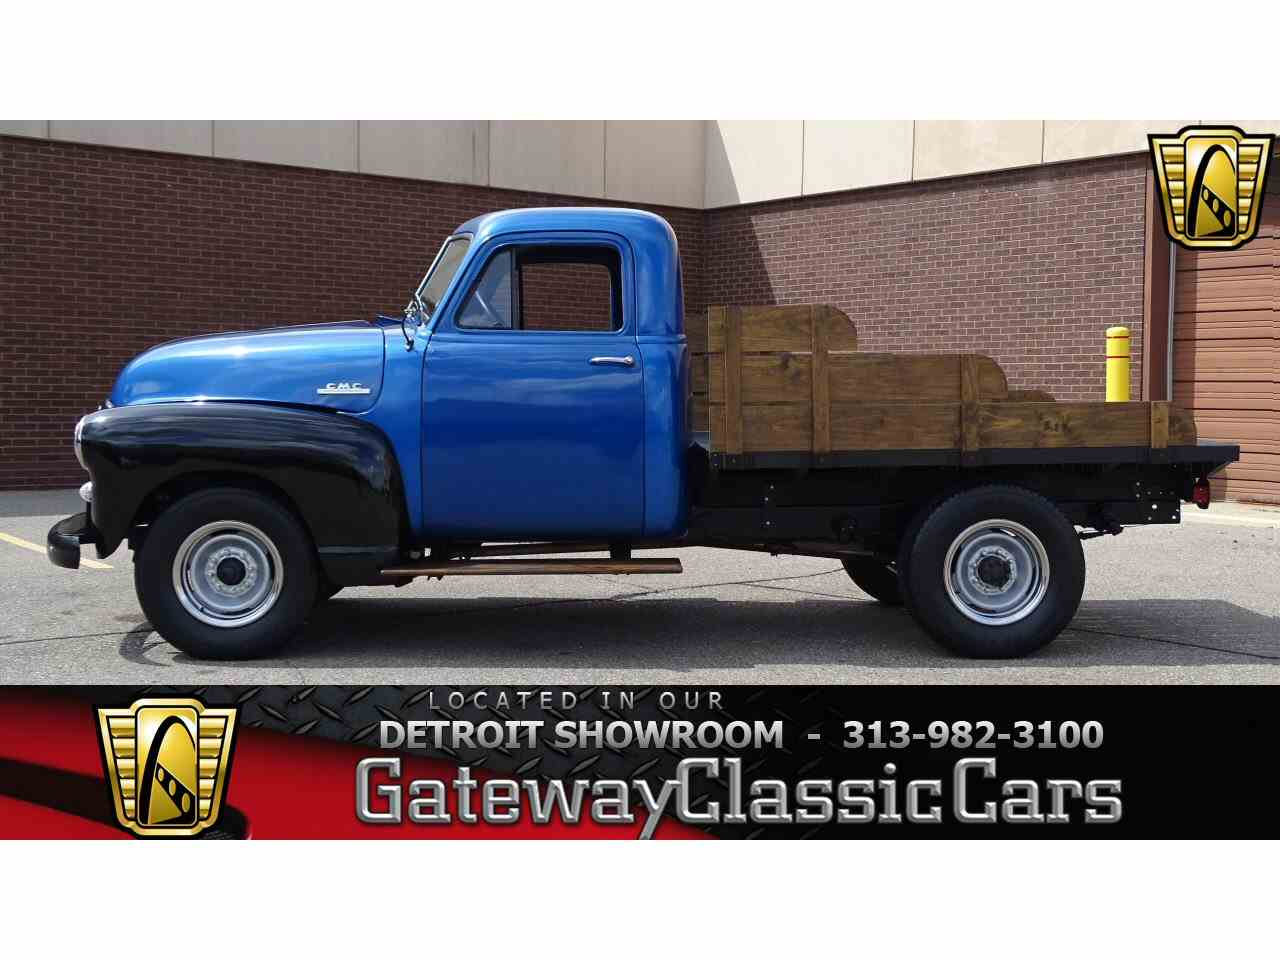 Large Picture of '53 GMC Pickup - $13,595.00 Offered by Gateway Classic Cars - Detroit - LSON